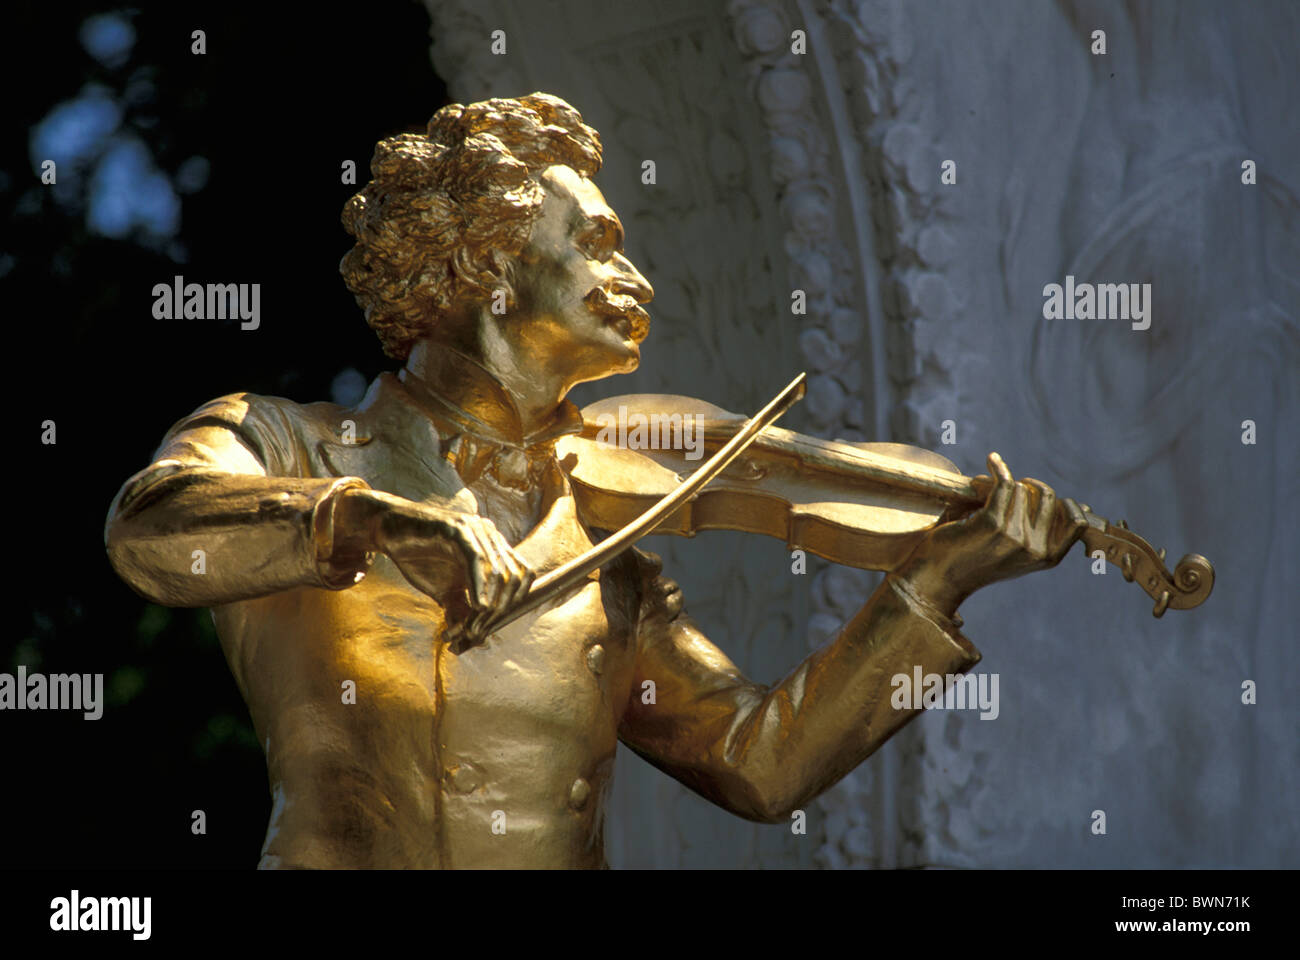 Austria Europe Johann Strauss II Statue Vienna golden sculpture waltz king art music history culture compo Stock Photo